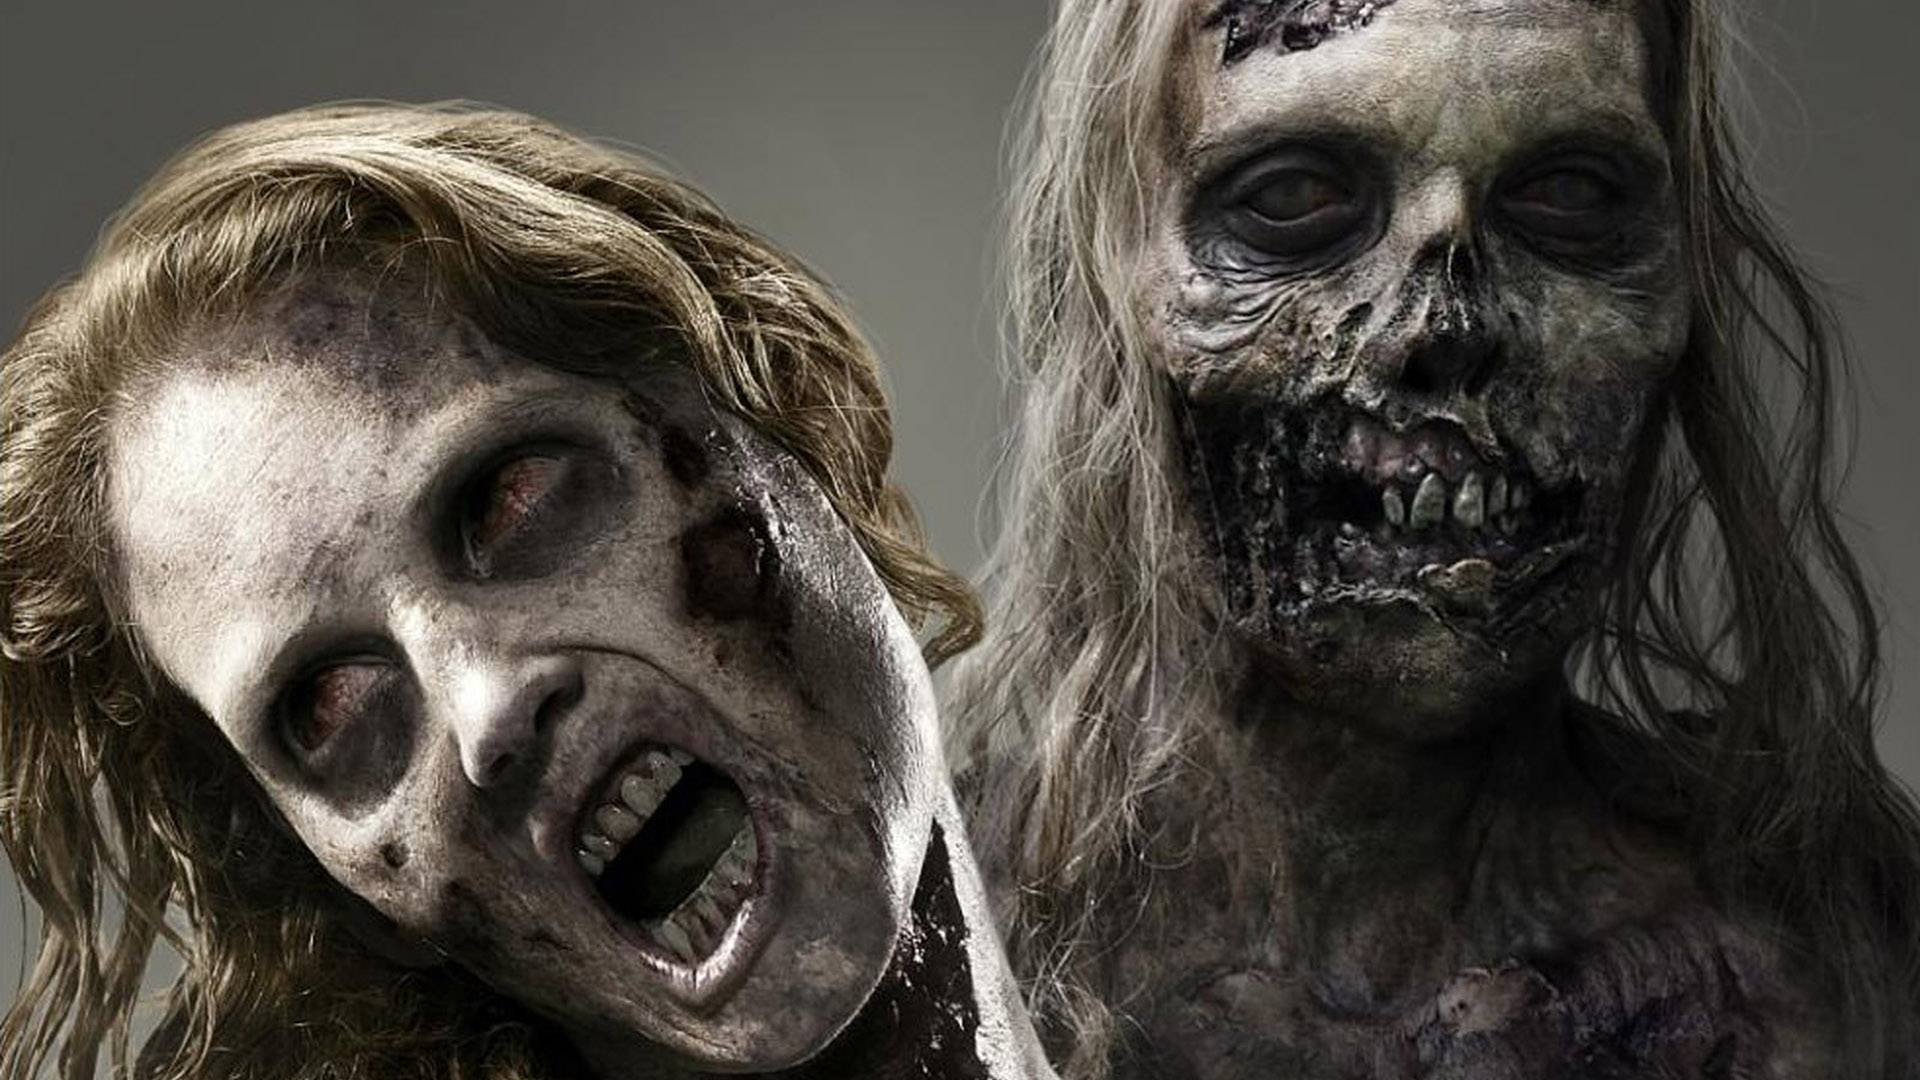 Cool-Zombie-Page-1920%C3%971080-Zombie-Adorable-wallpaper-wp3404212